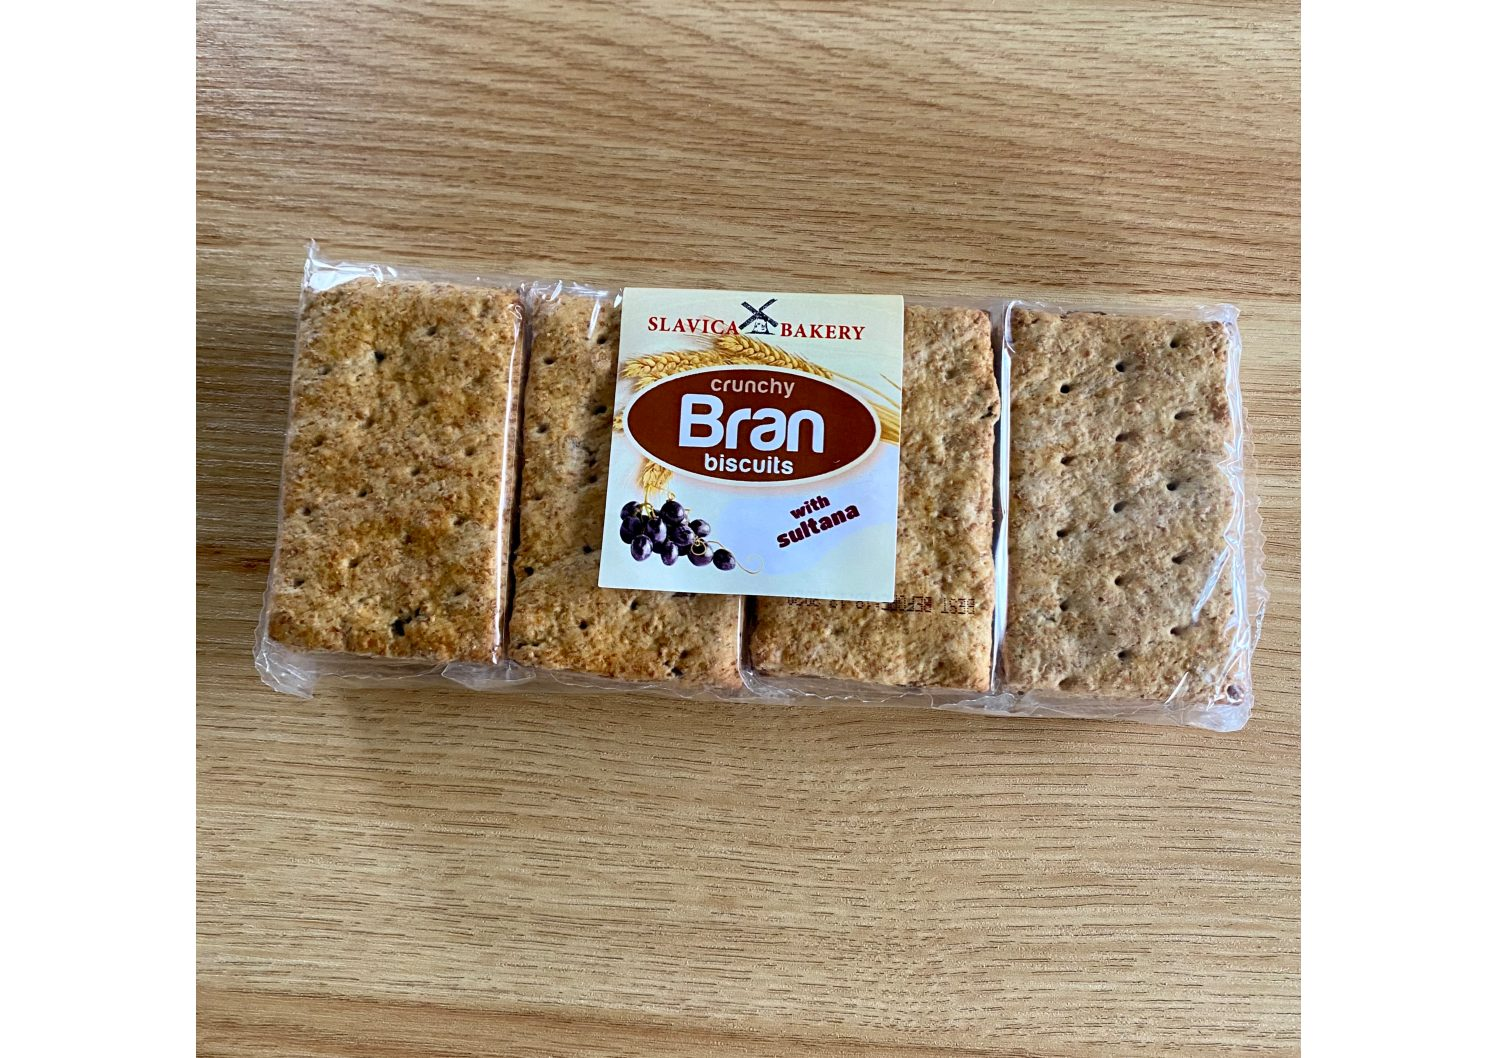 Slavica Bakery Bran Biscuits with Sultana 230g